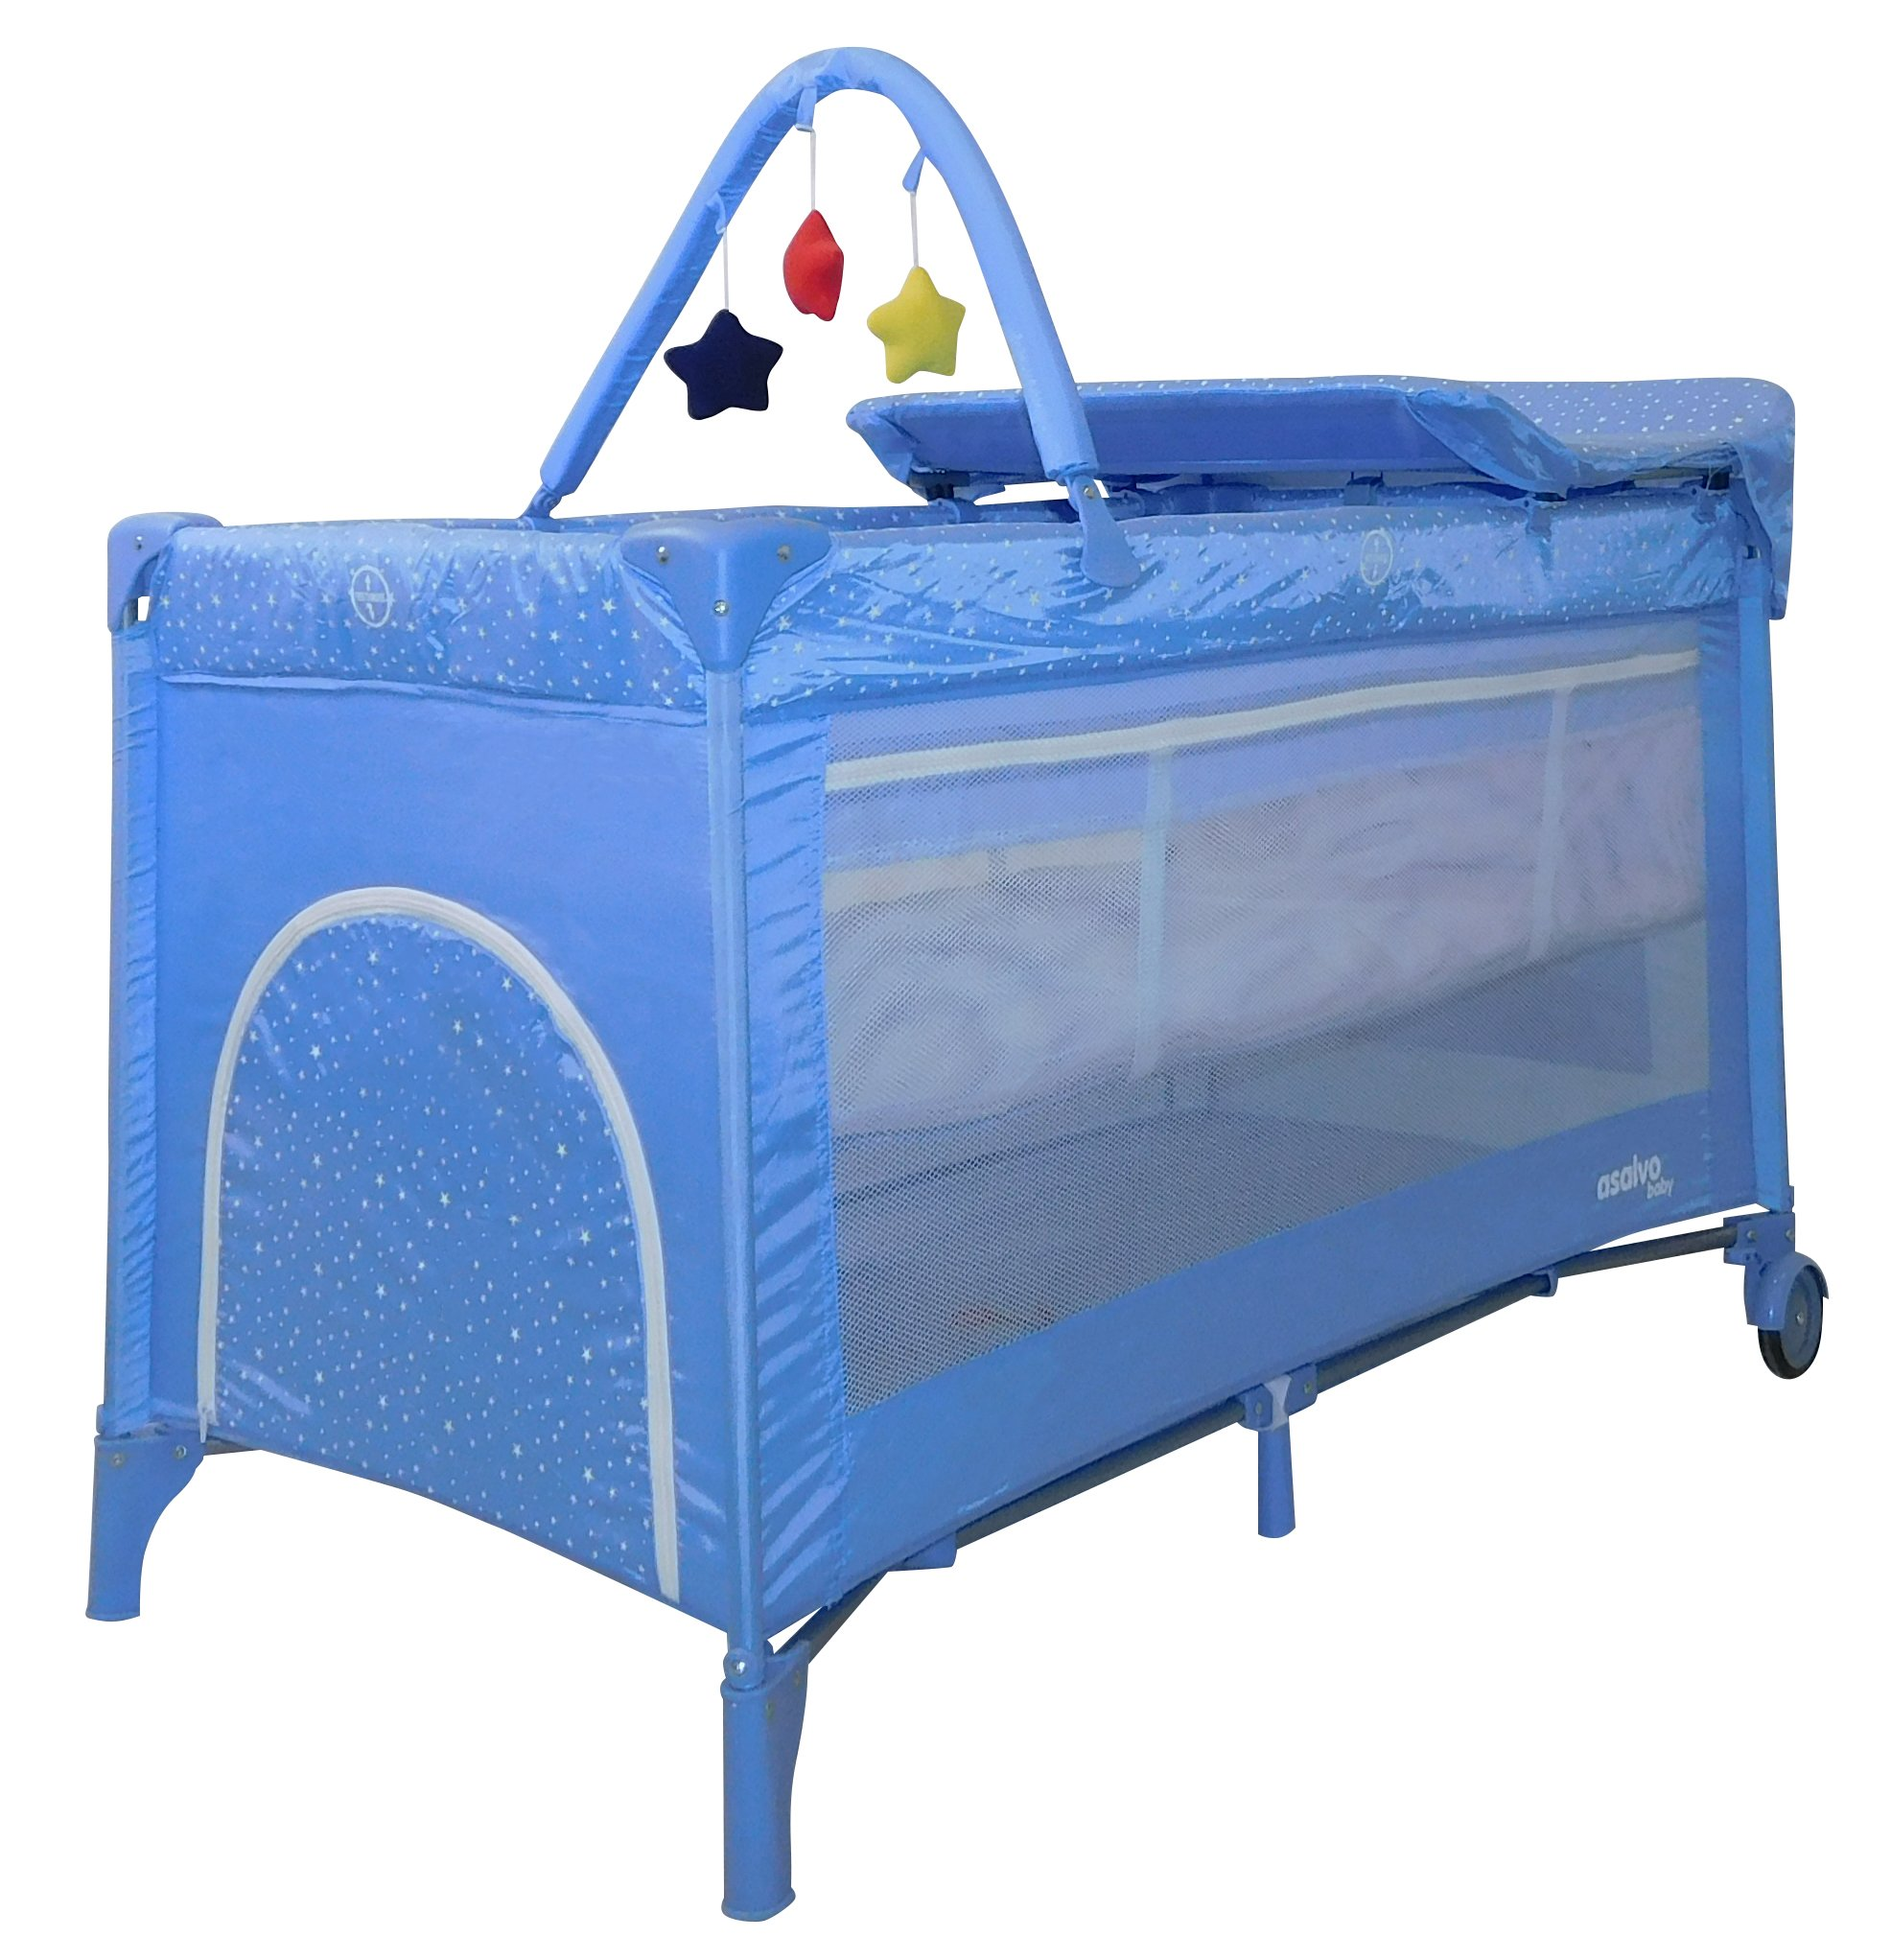 ASALVO 16027 Travel Cot Complet Stars Blue, Multi-Colour Asalvo Solid design and Double safety lock. Measures 21.7 cm length by 21.2 cm width by 89.5 cm height. Made in Spain 1